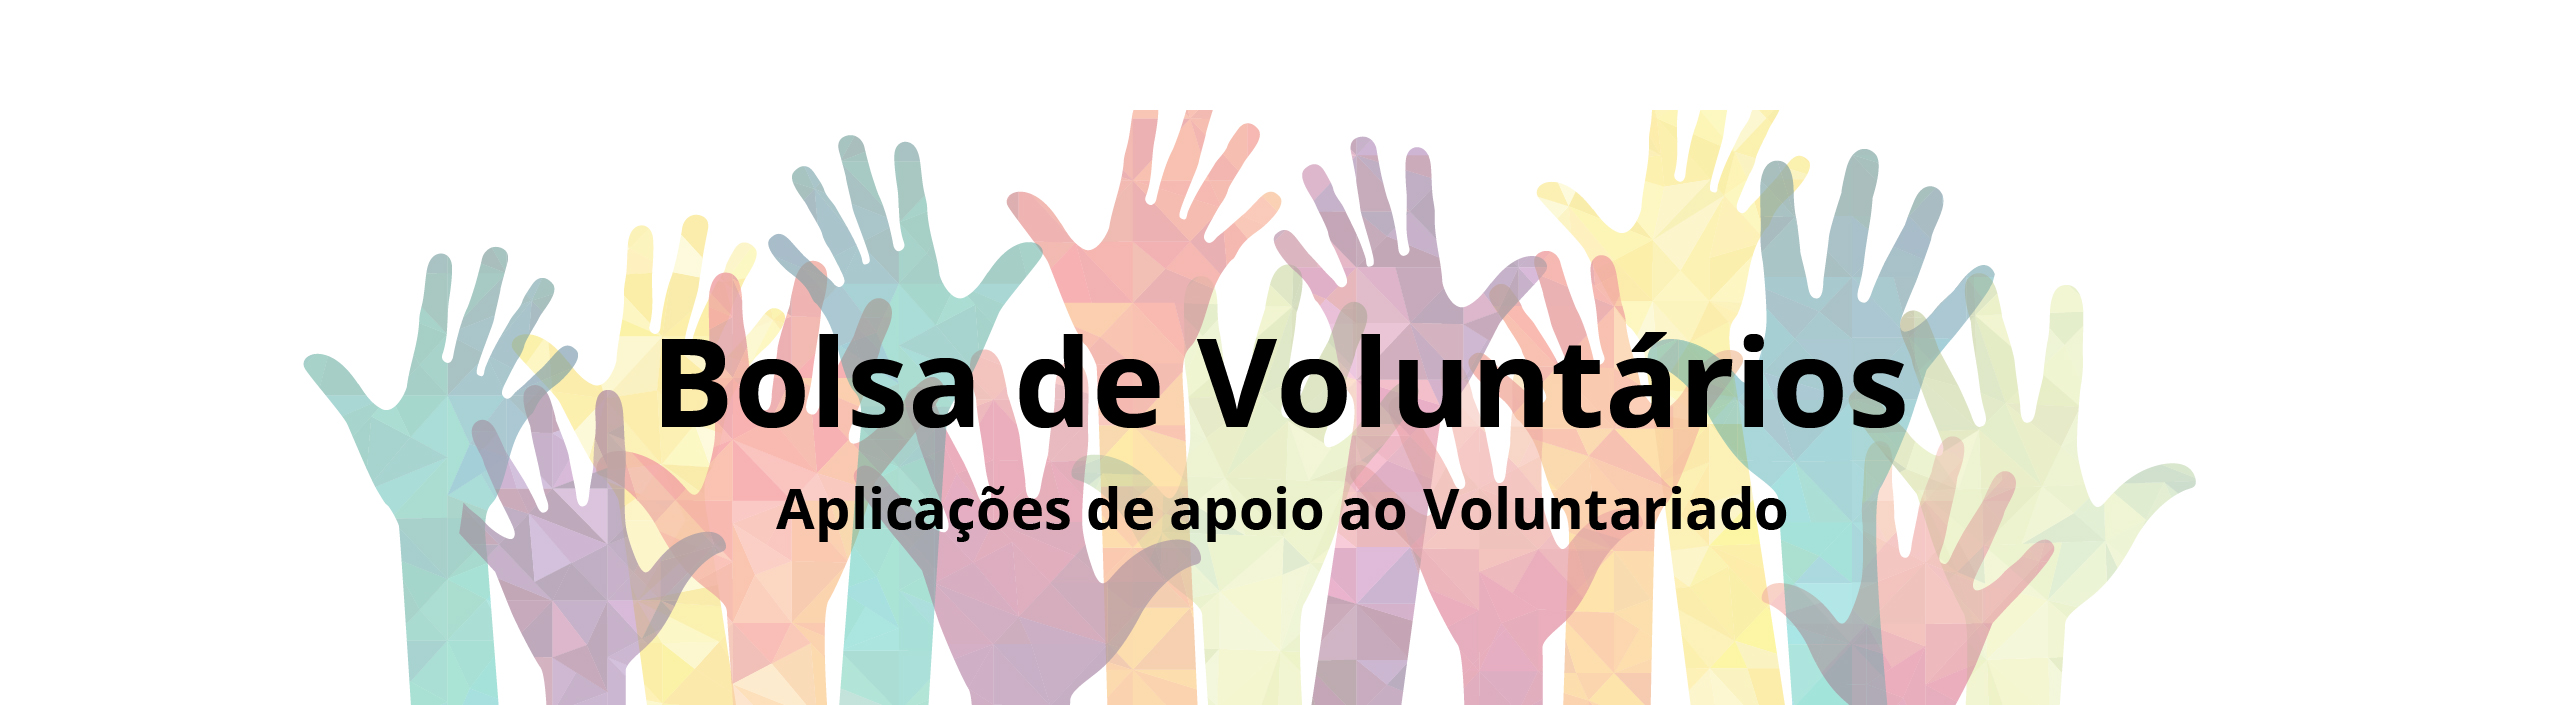 https://www.voluntarioscovid19.cv/